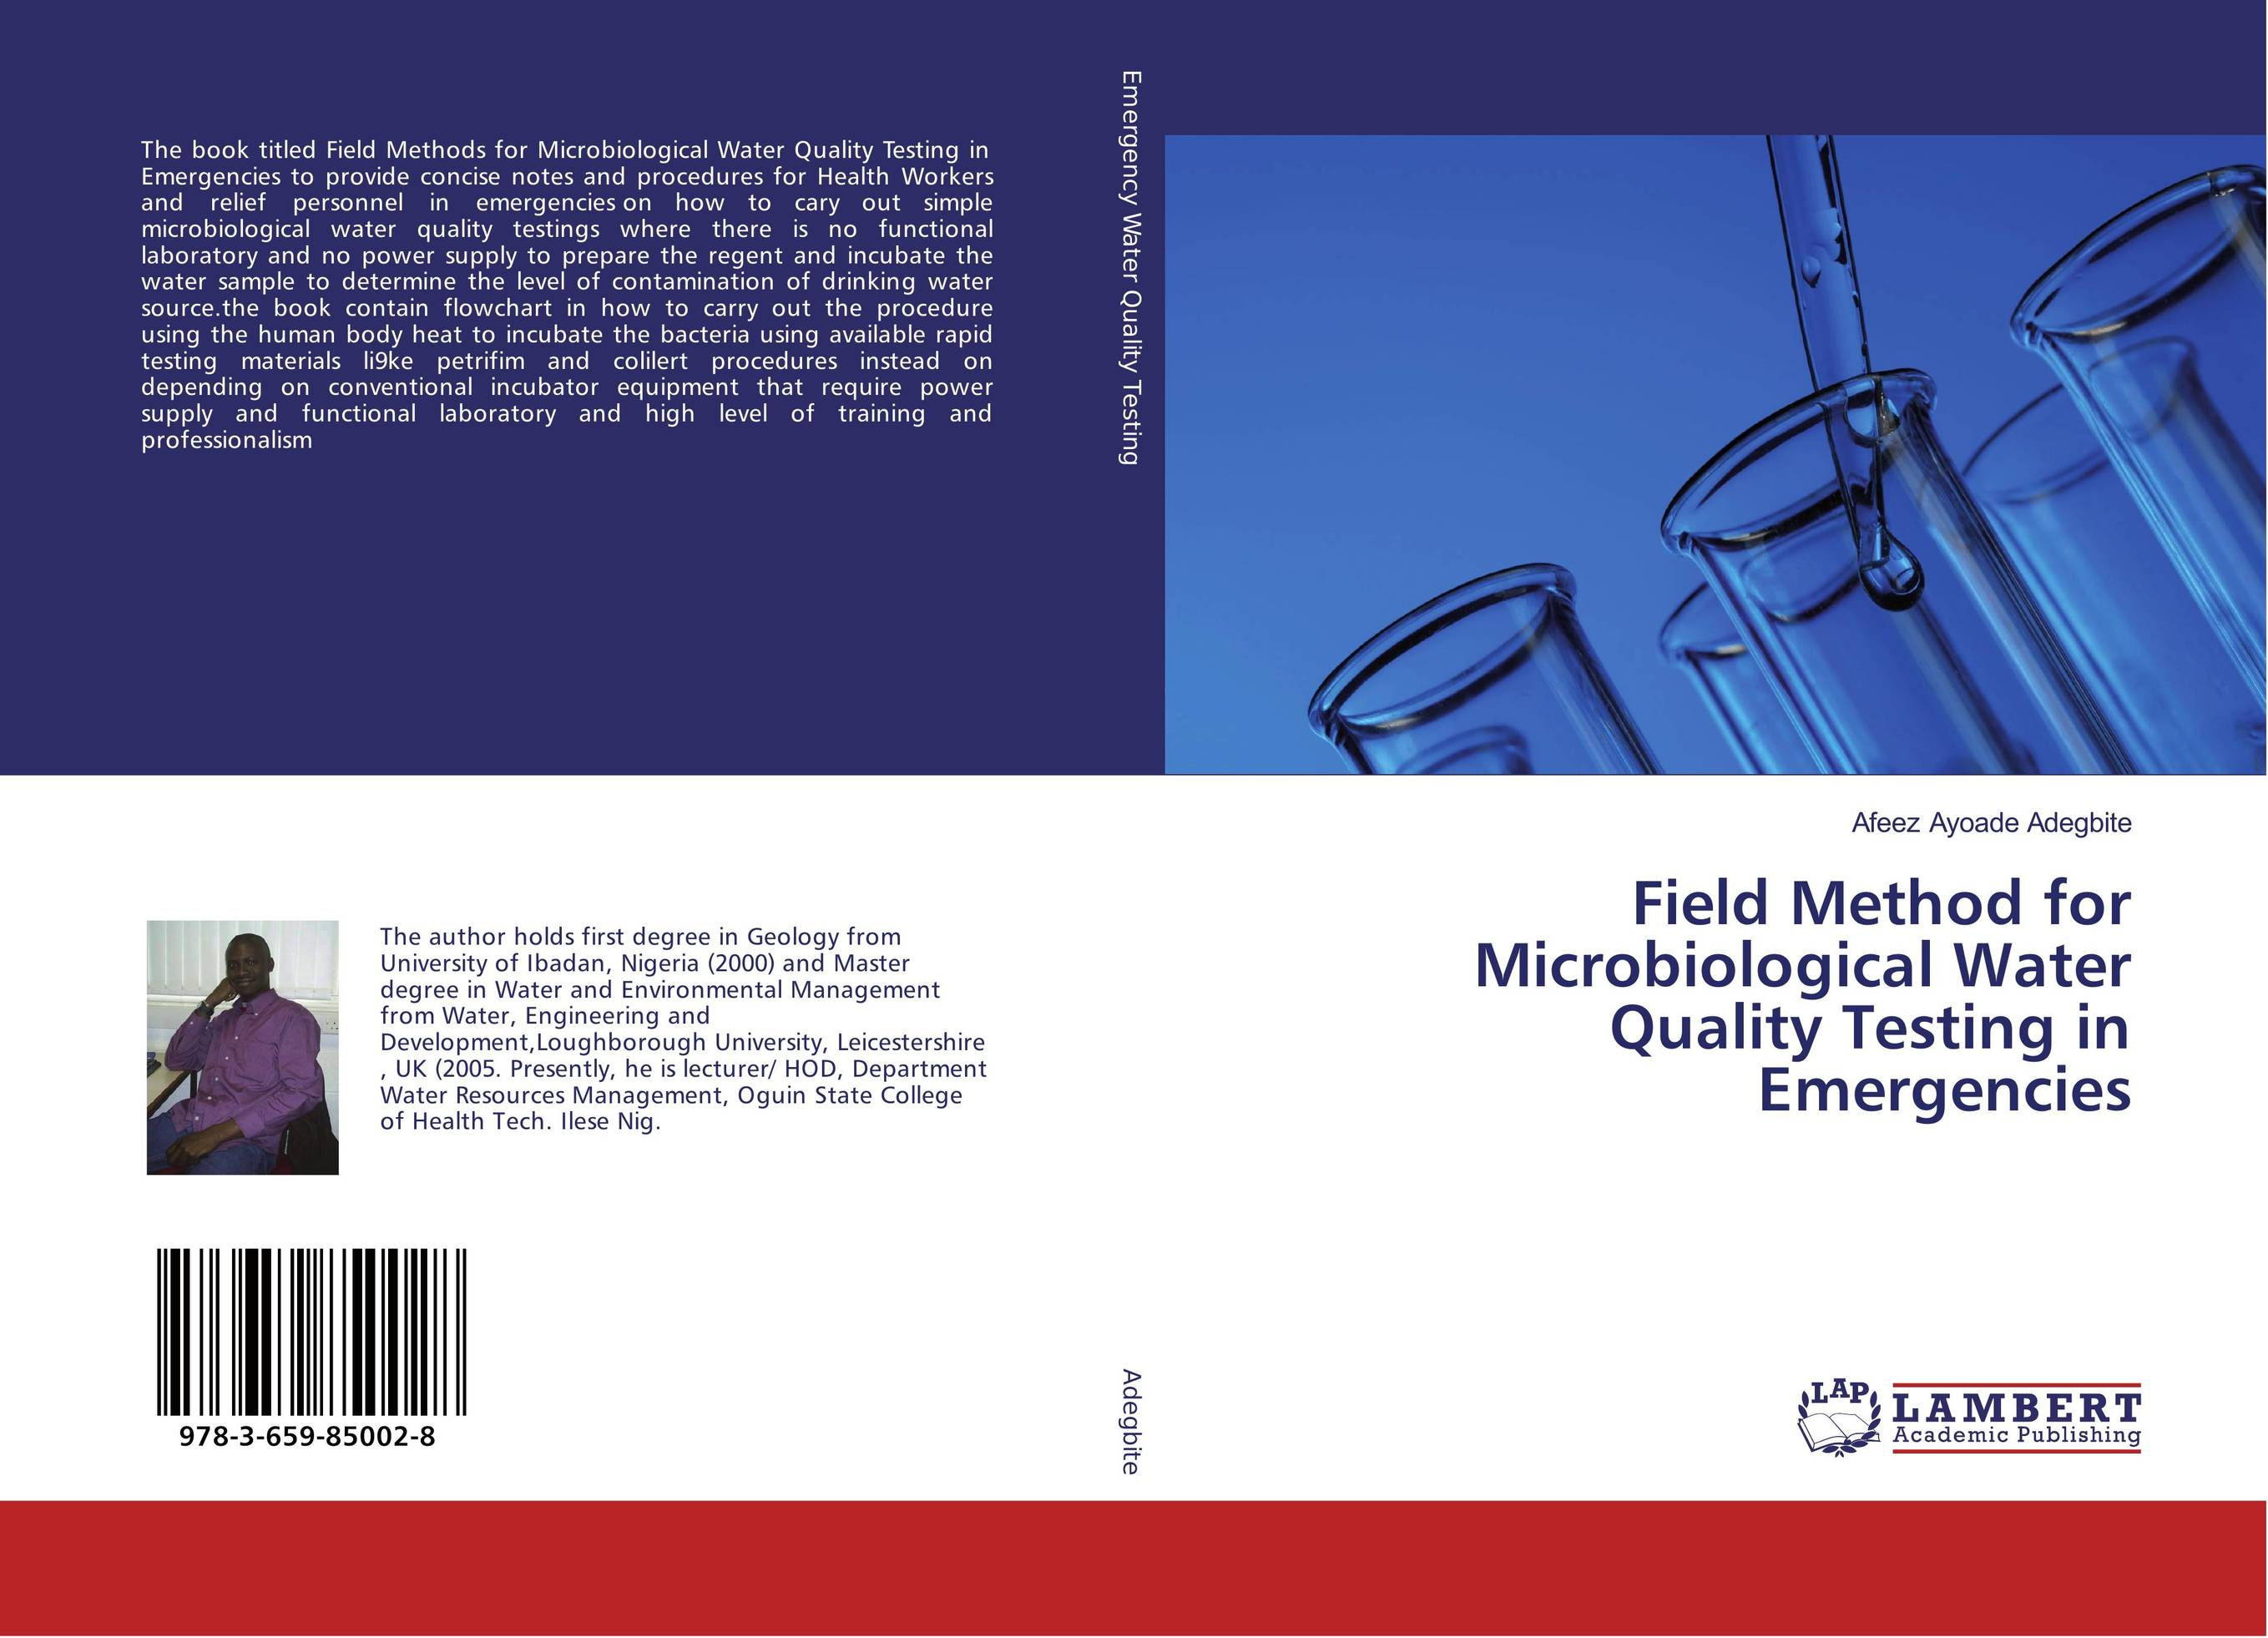 Field Method for Microbiological Water Quality Testing in Emergencies